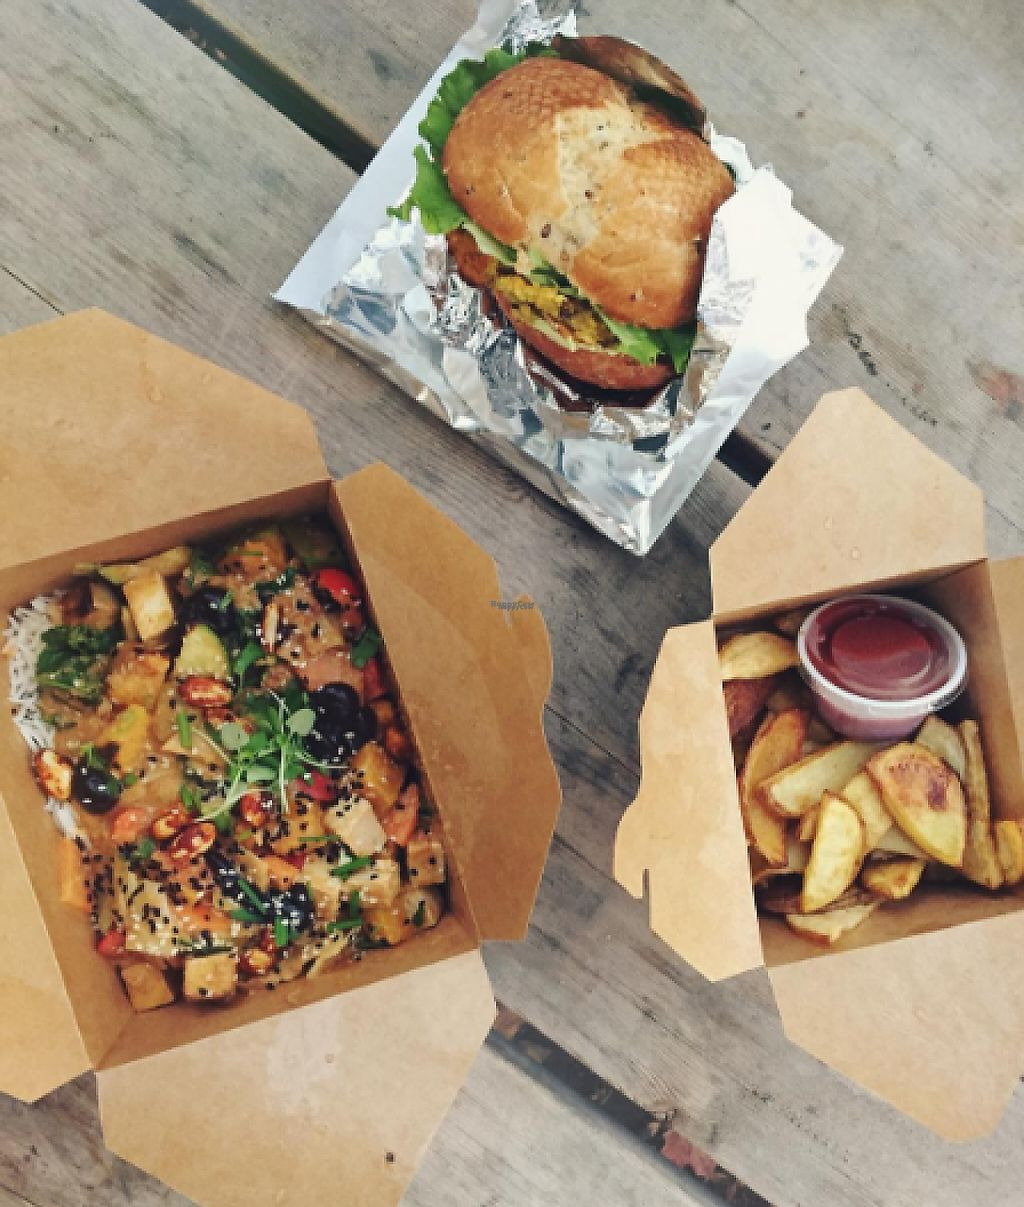 """Photo of CLOSED: Blossom Vegetarian Cafe  by <a href=""""/members/profile/tarsbo"""">tarsbo</a> <br/>Thai bowl and curried lentil burger with fries <br/> March 6, 2017  - <a href='/contact/abuse/image/45894/233527'>Report</a>"""